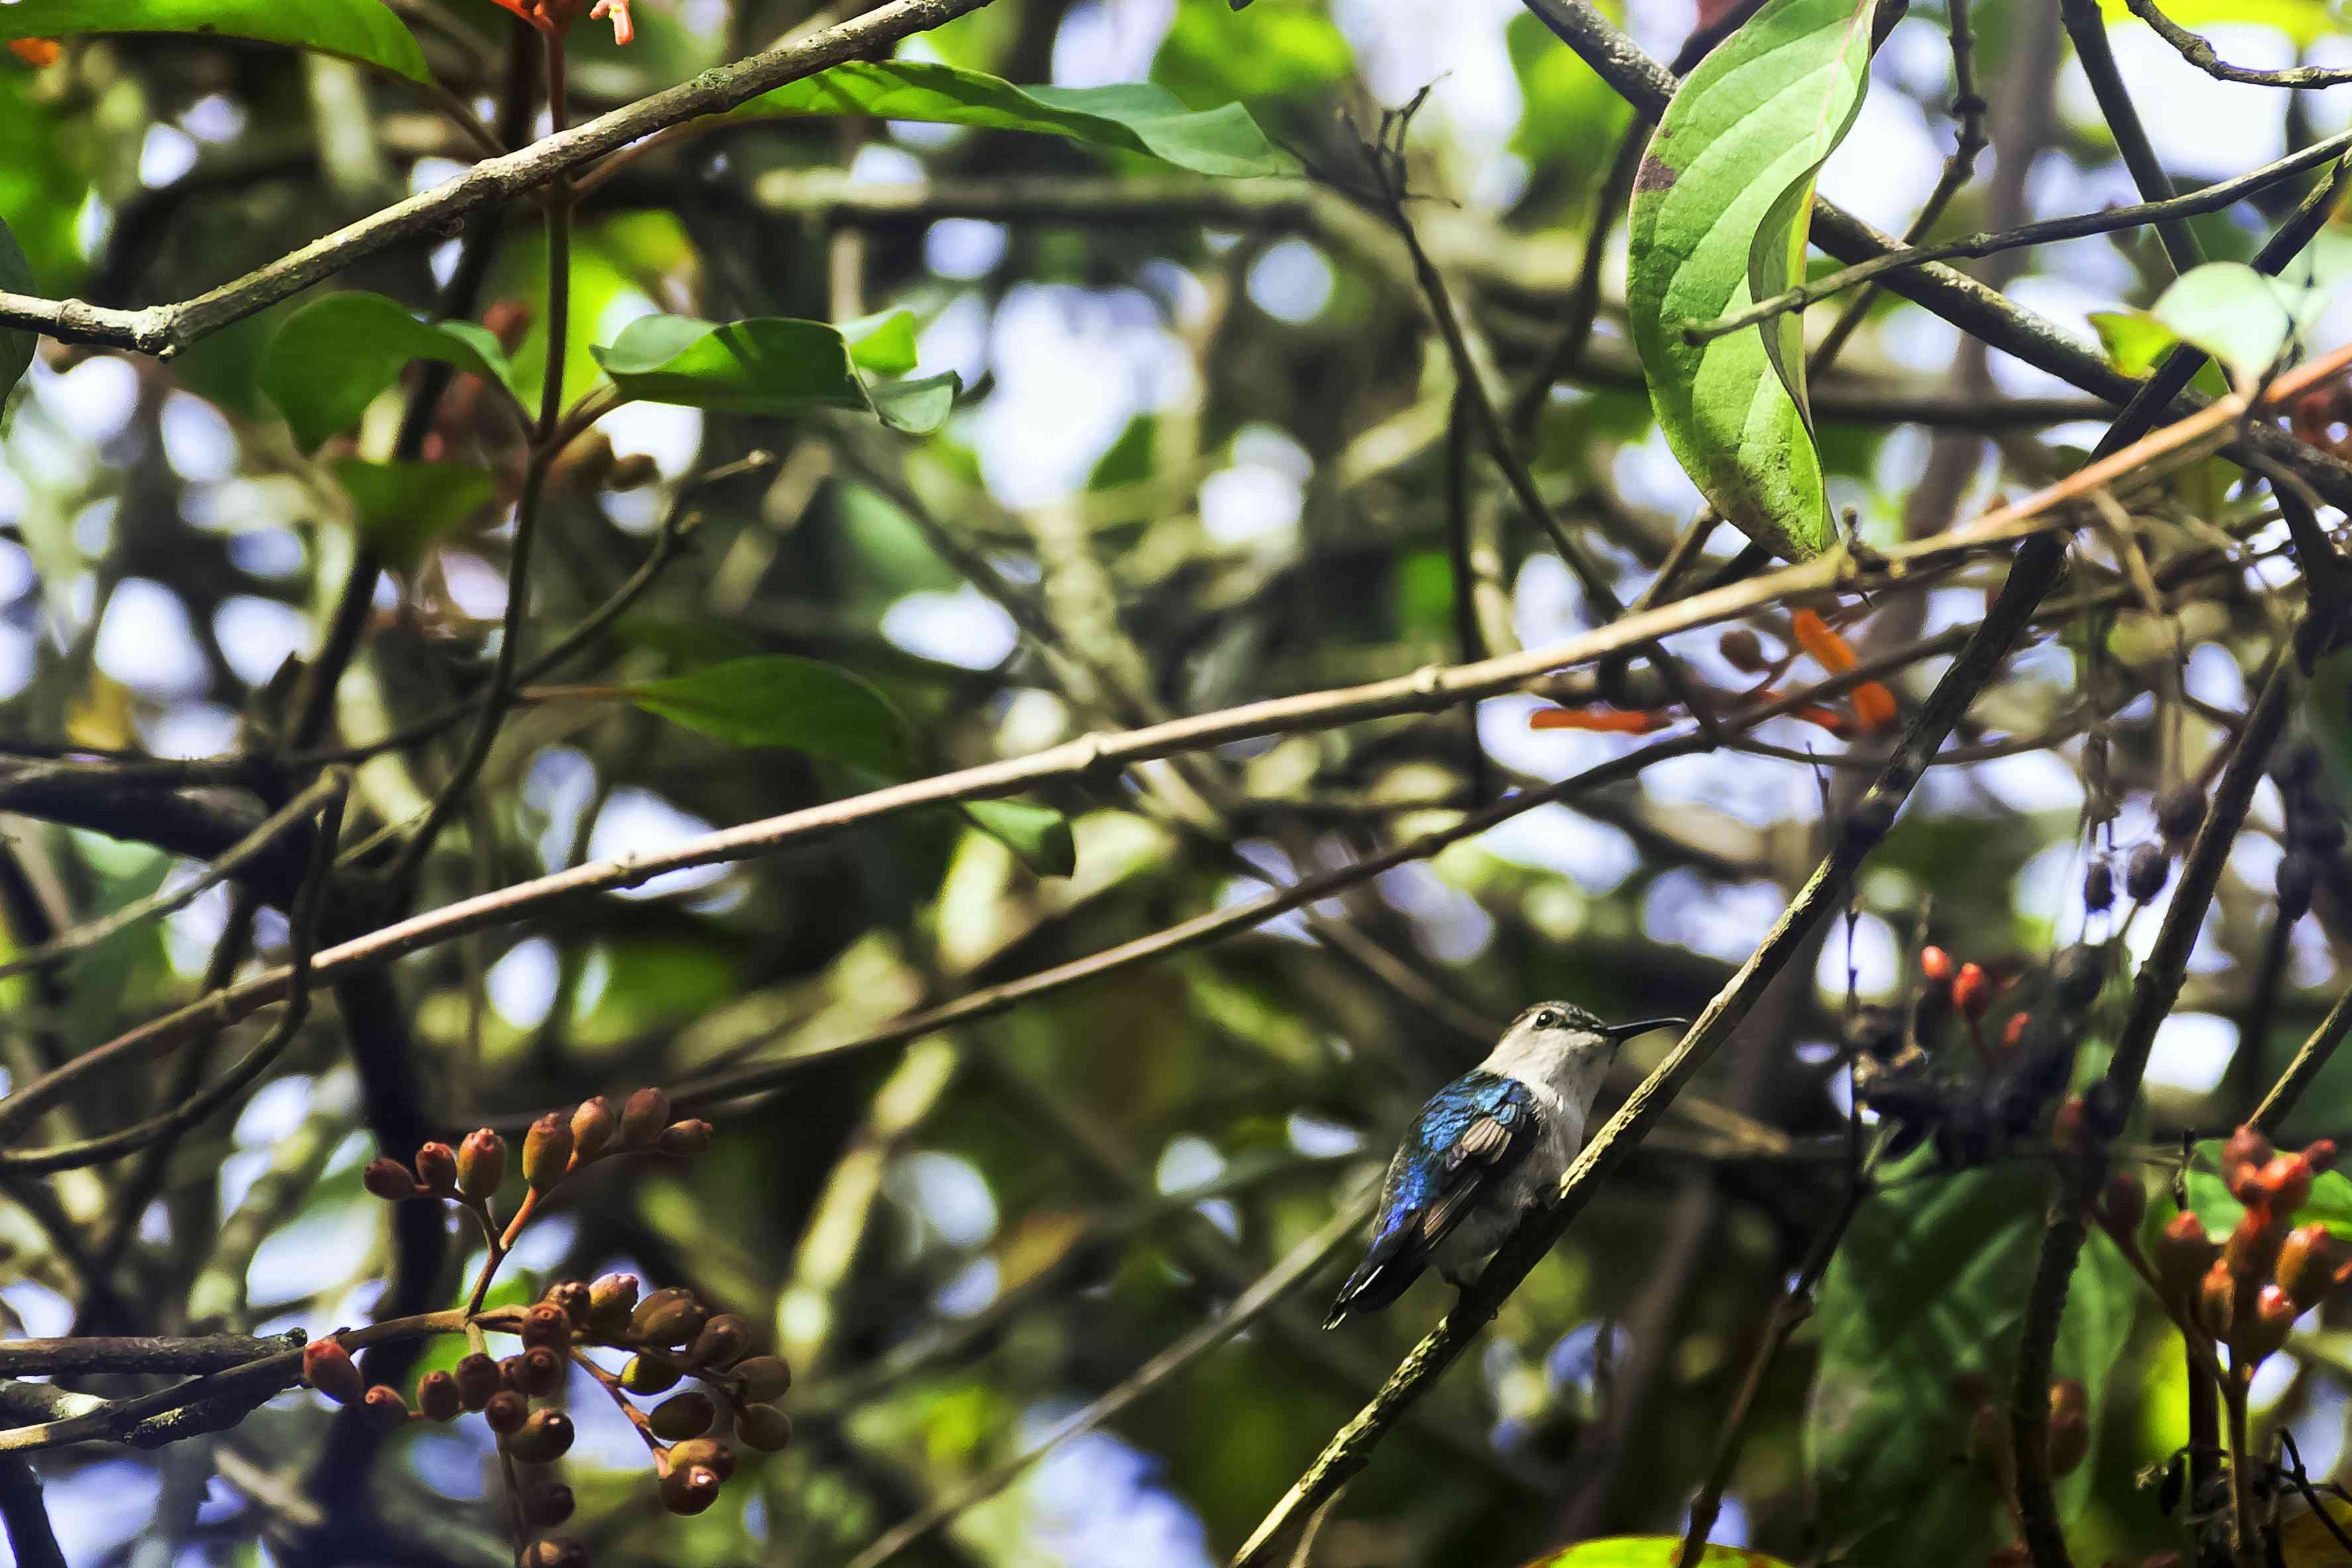 Bee hummingbird in a tree with green leaves and red pods